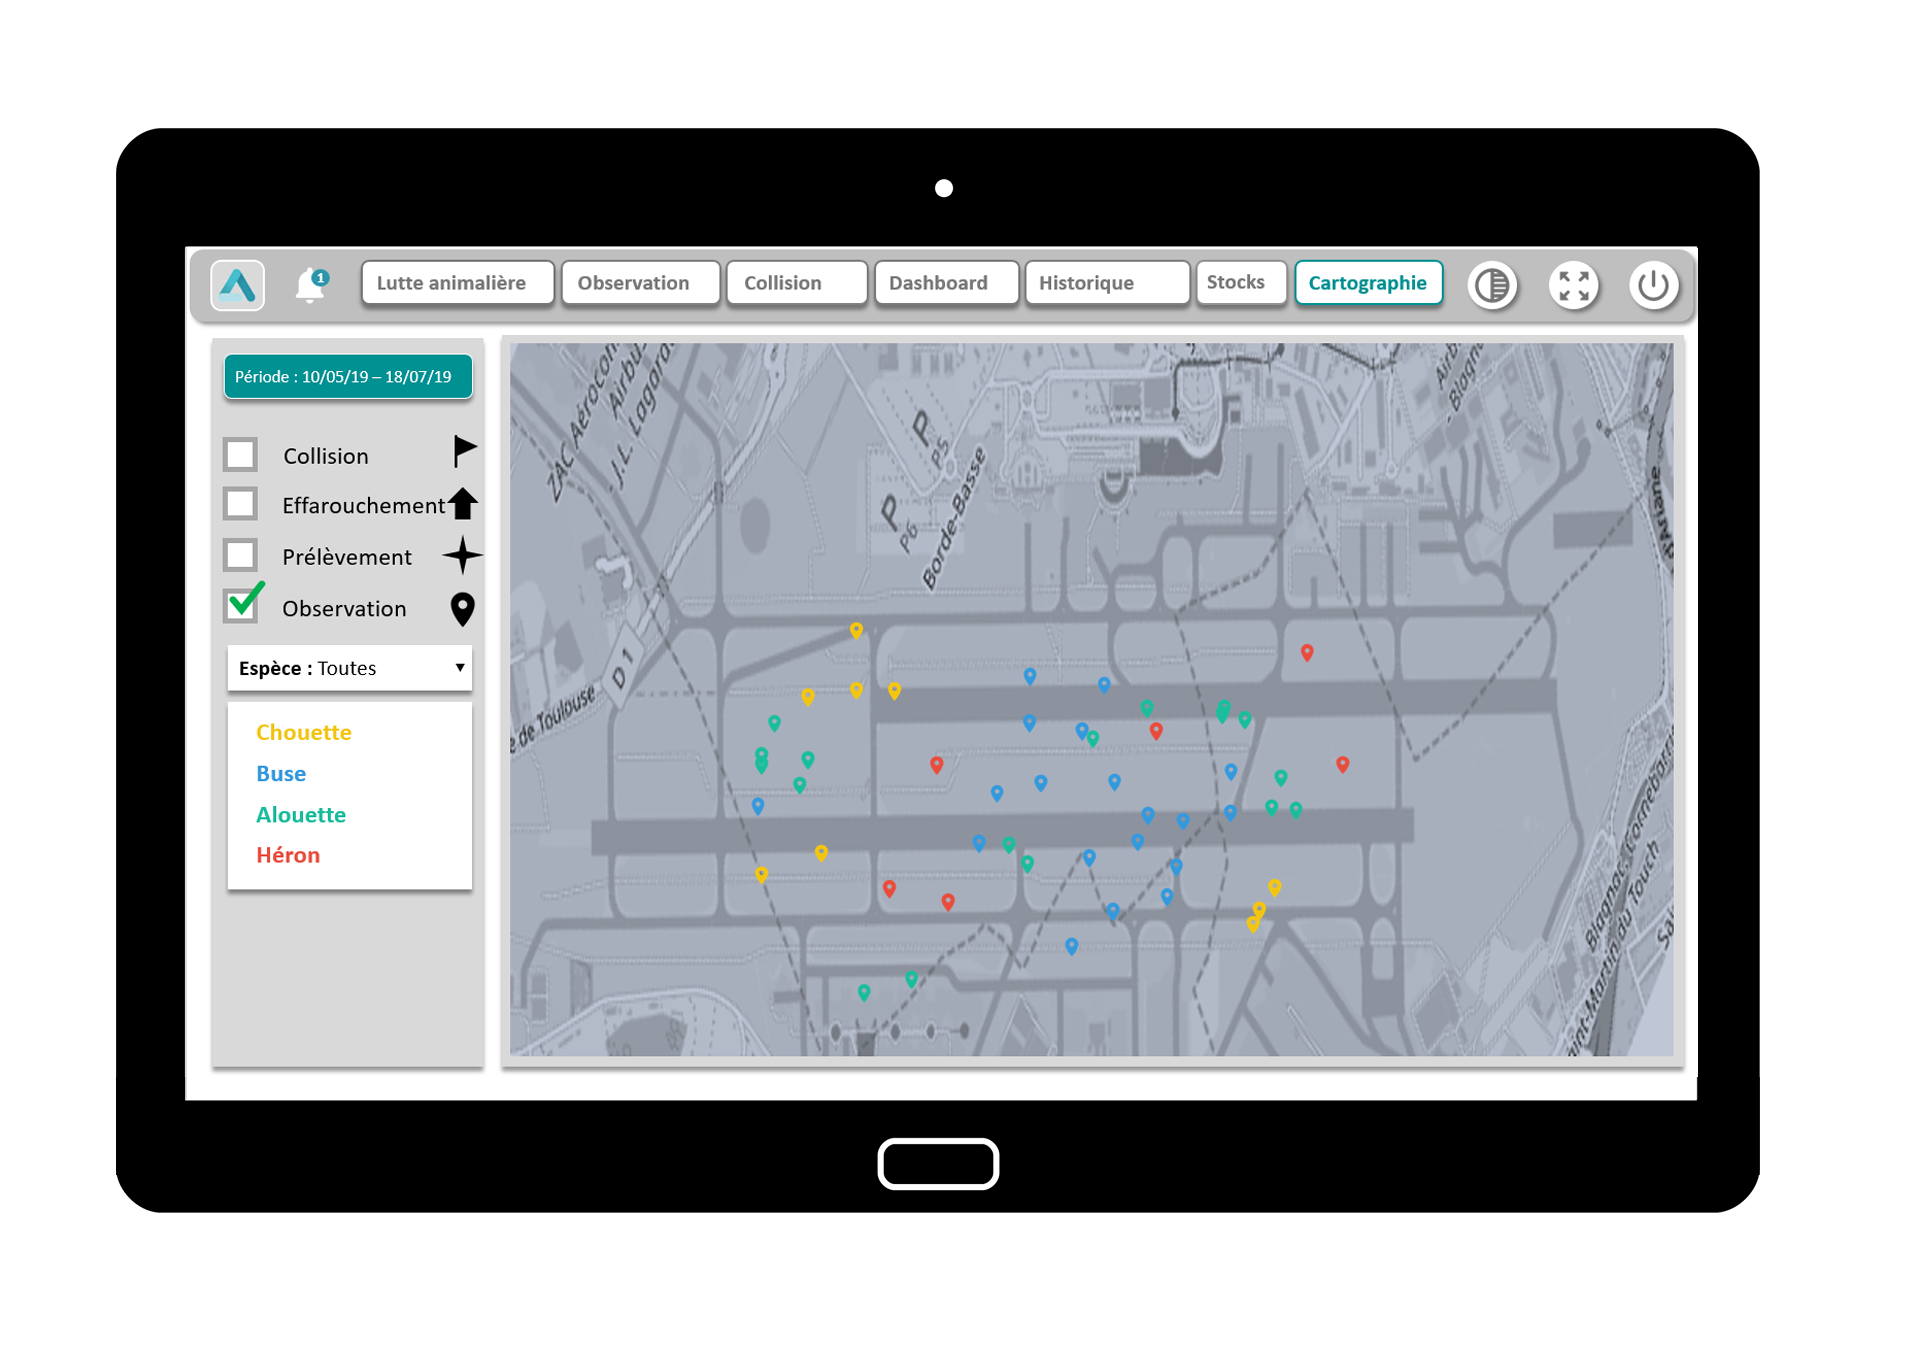 airport-infra-inspection-at-fingertips.png